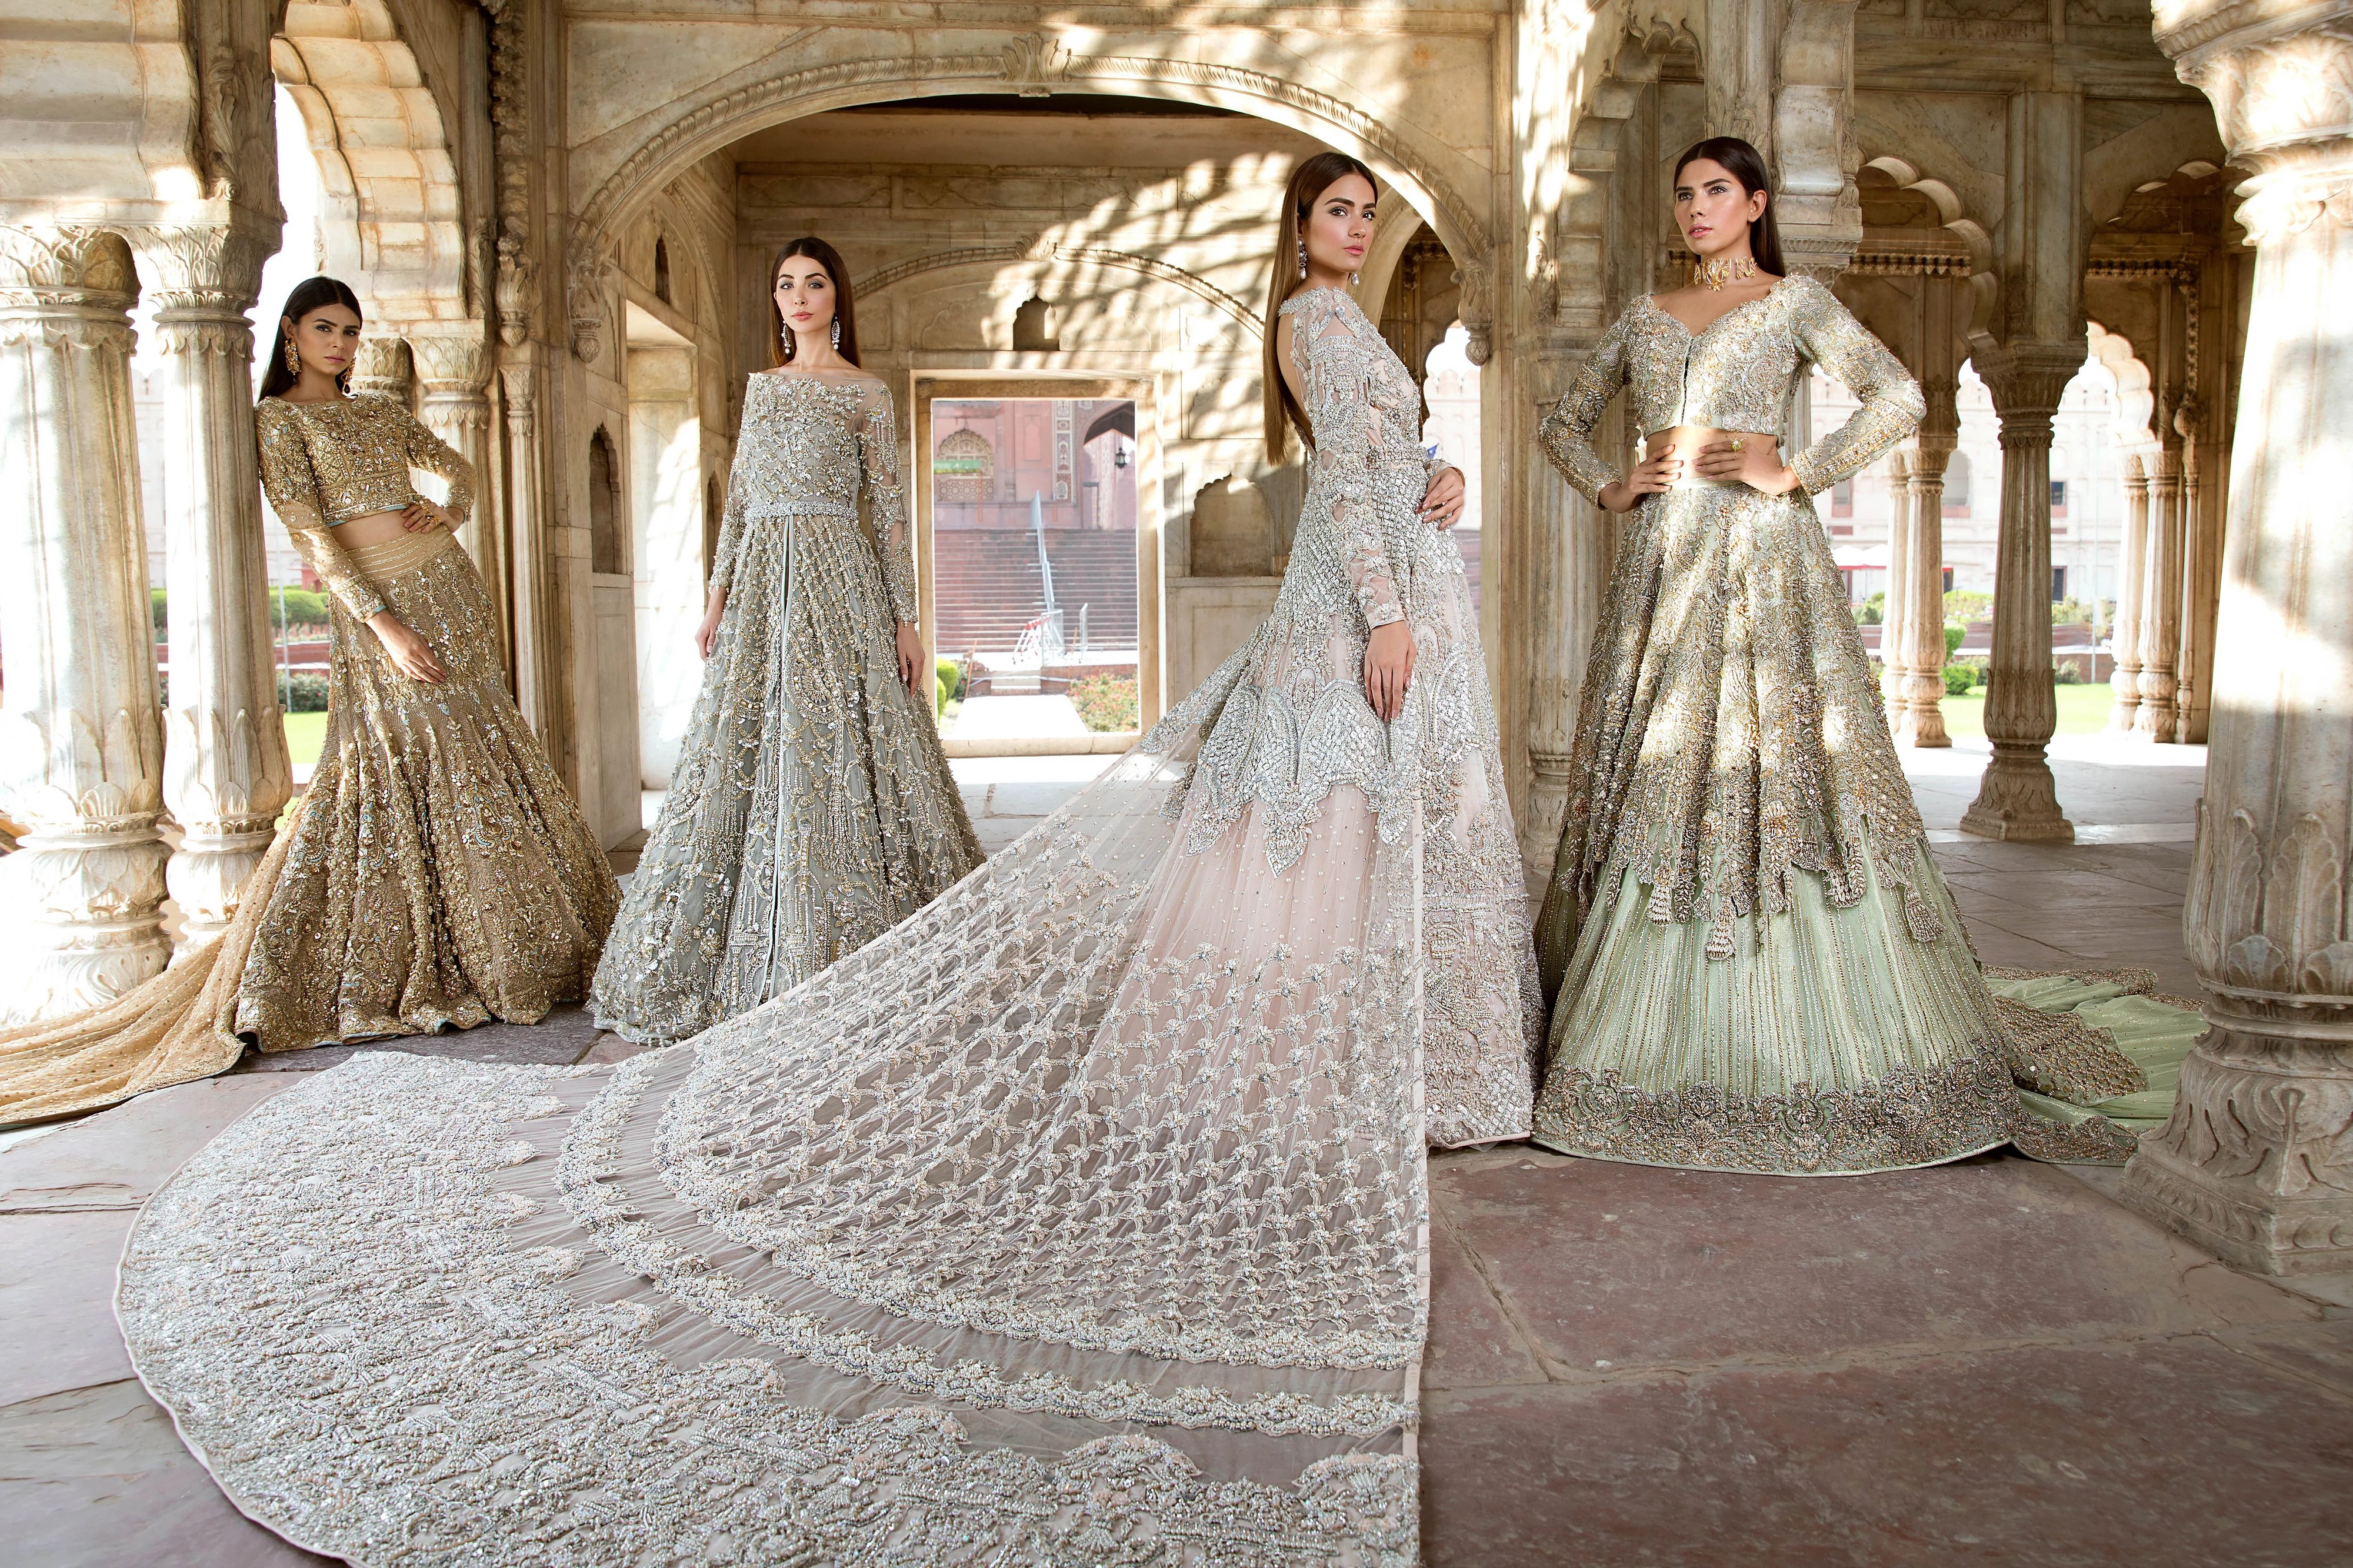 Variety In Designs And Styles For Pakistani Bridal Dresses For Girls By Emma Johnson Bridal Dresses Wedding Dresses Aug 2020 Medium,Wedding Guest Simple Rose Gold Casual Dress